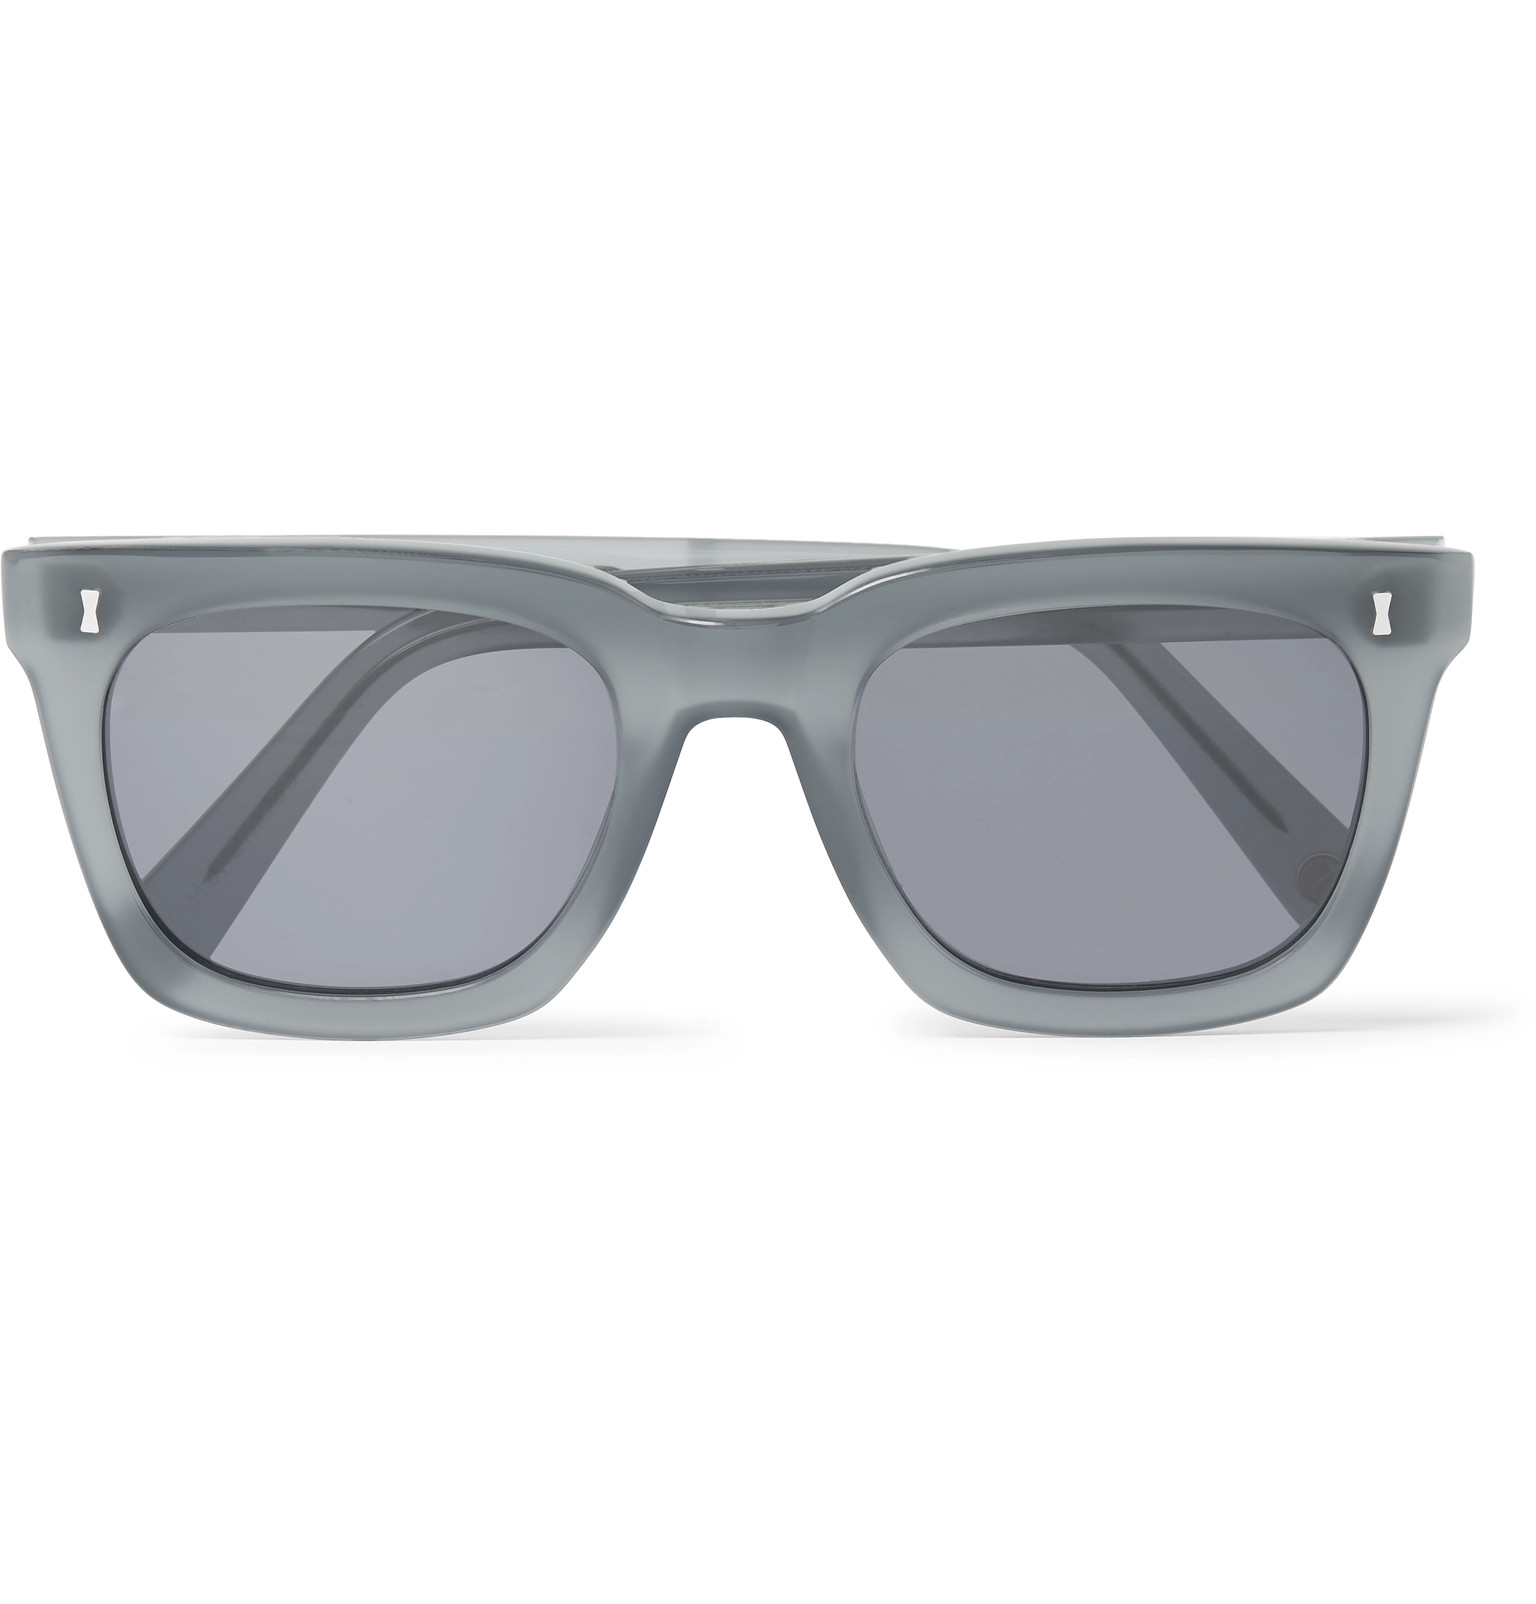 2405bfd7ac77 Cubitts - Judd Square-Frame Acetate Sunglasses